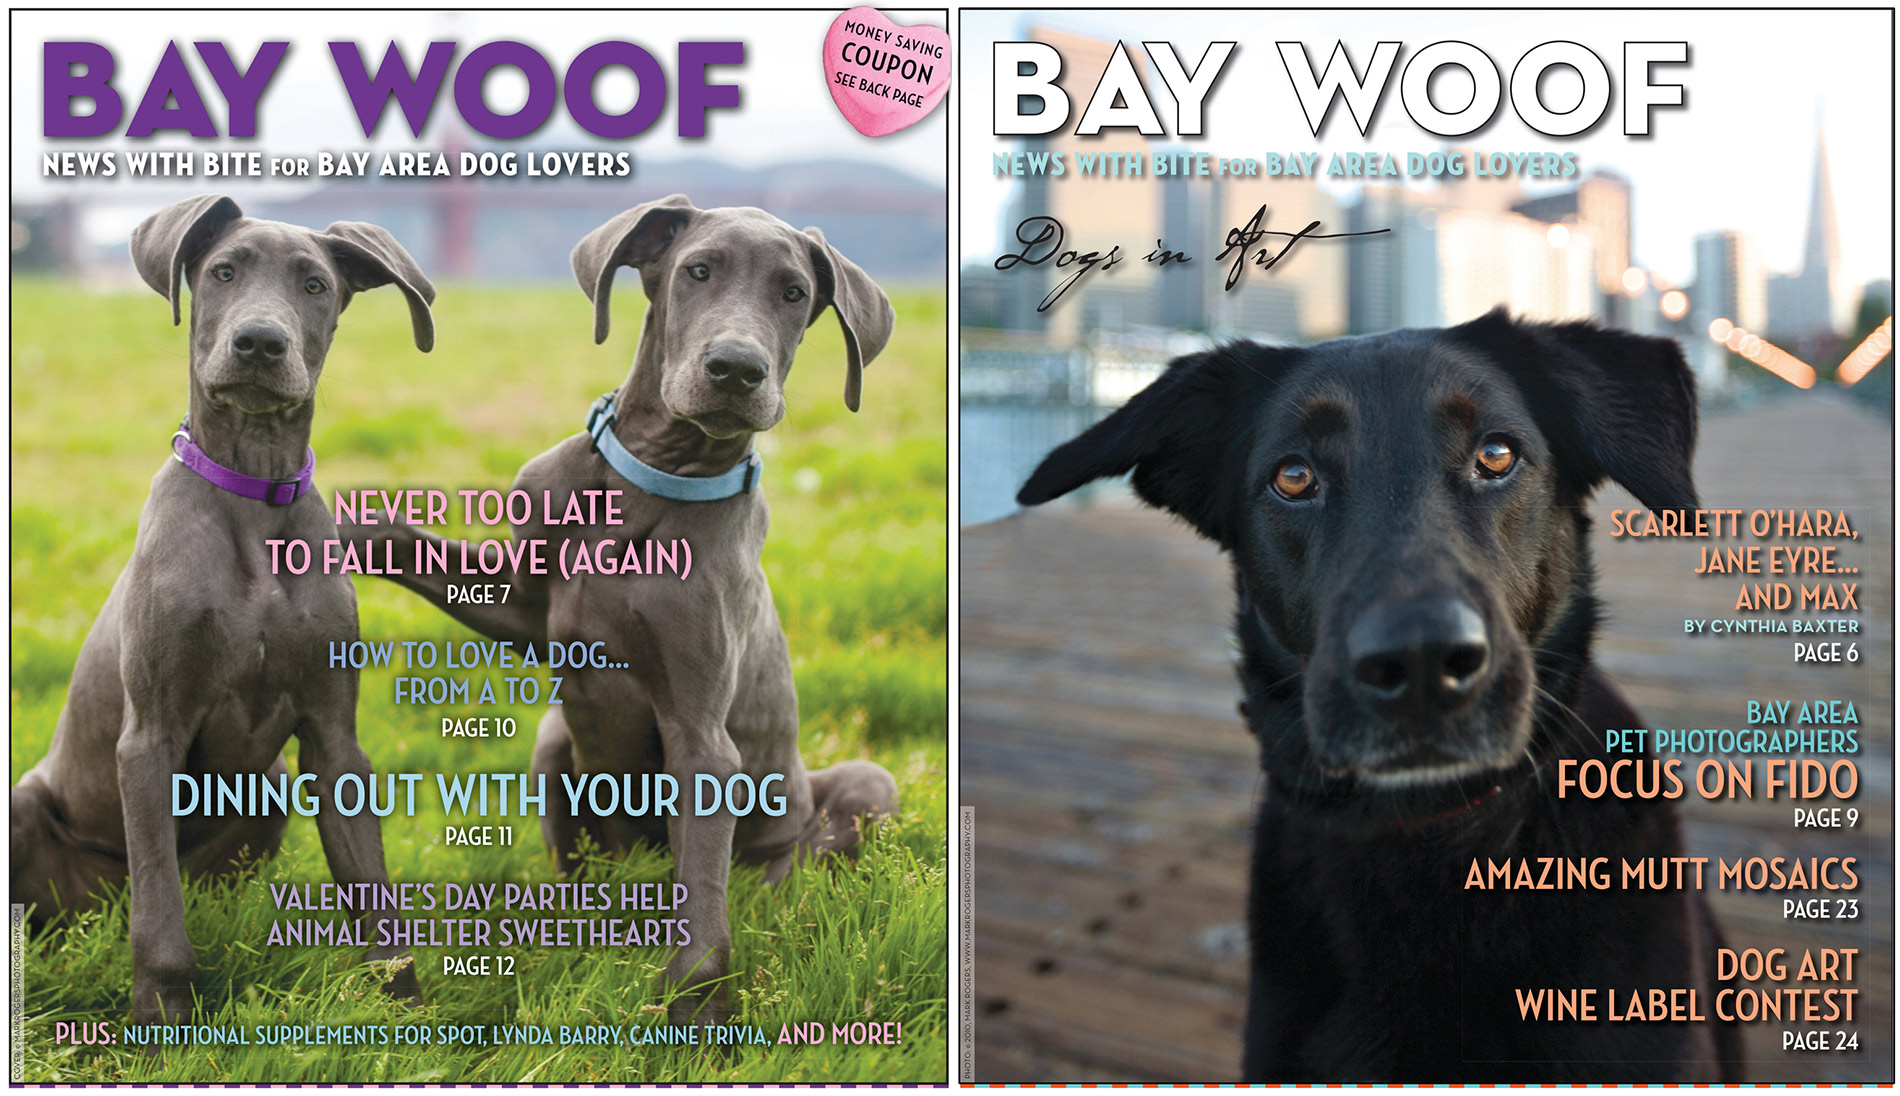 Editorial Photography | Bay Woof Cover Dogs by Mark Rogers